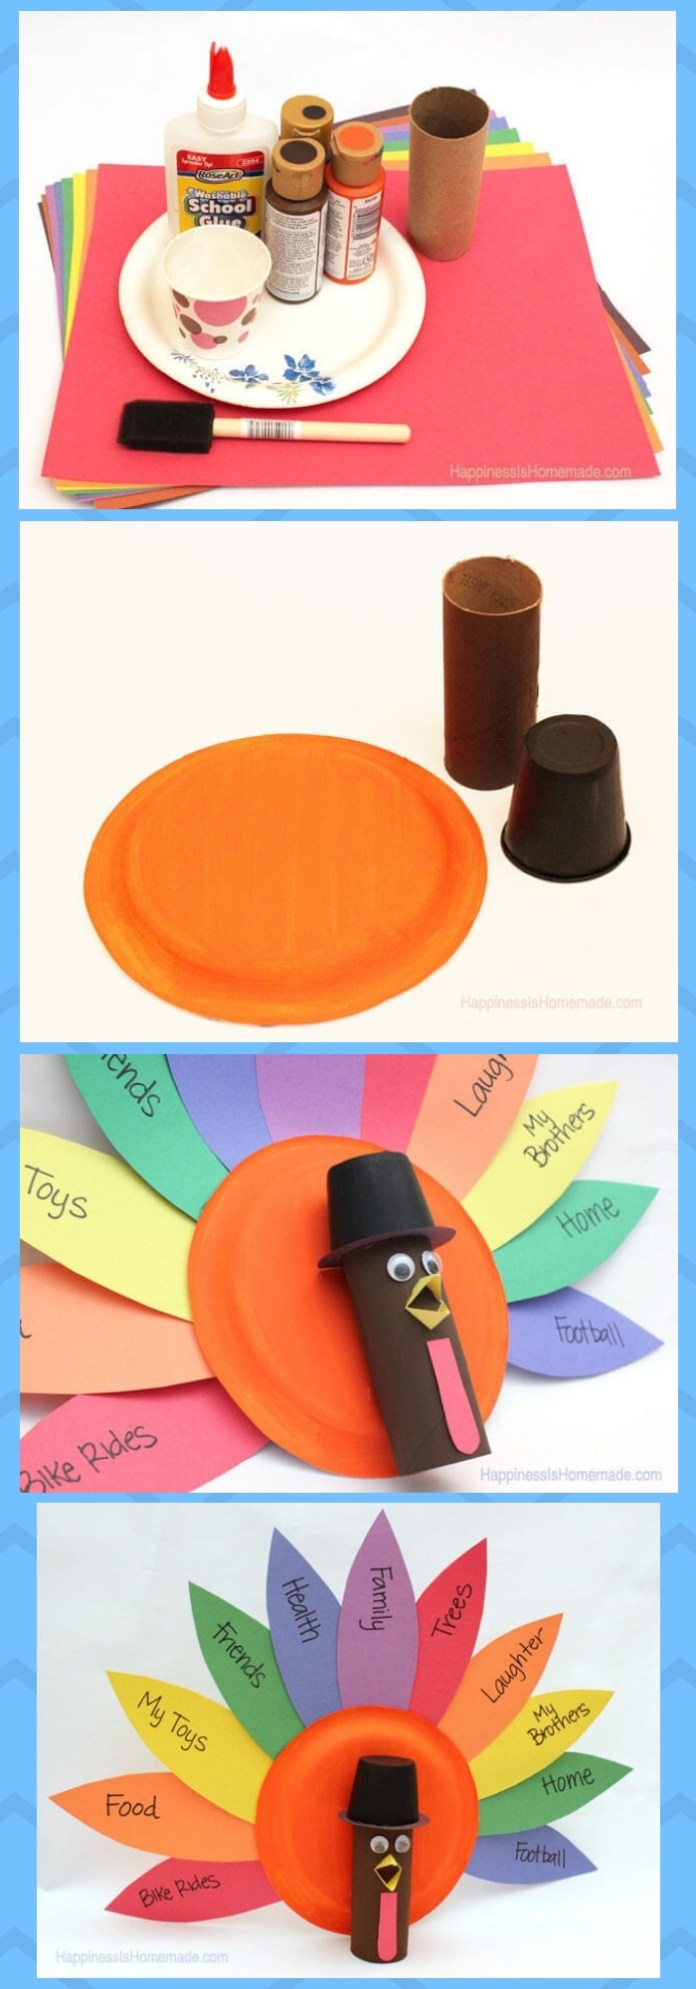 Gratitude Turkeys | Simple Ideas for Kids' Crafts for Thanksgiving - FarmFoodFamily.com